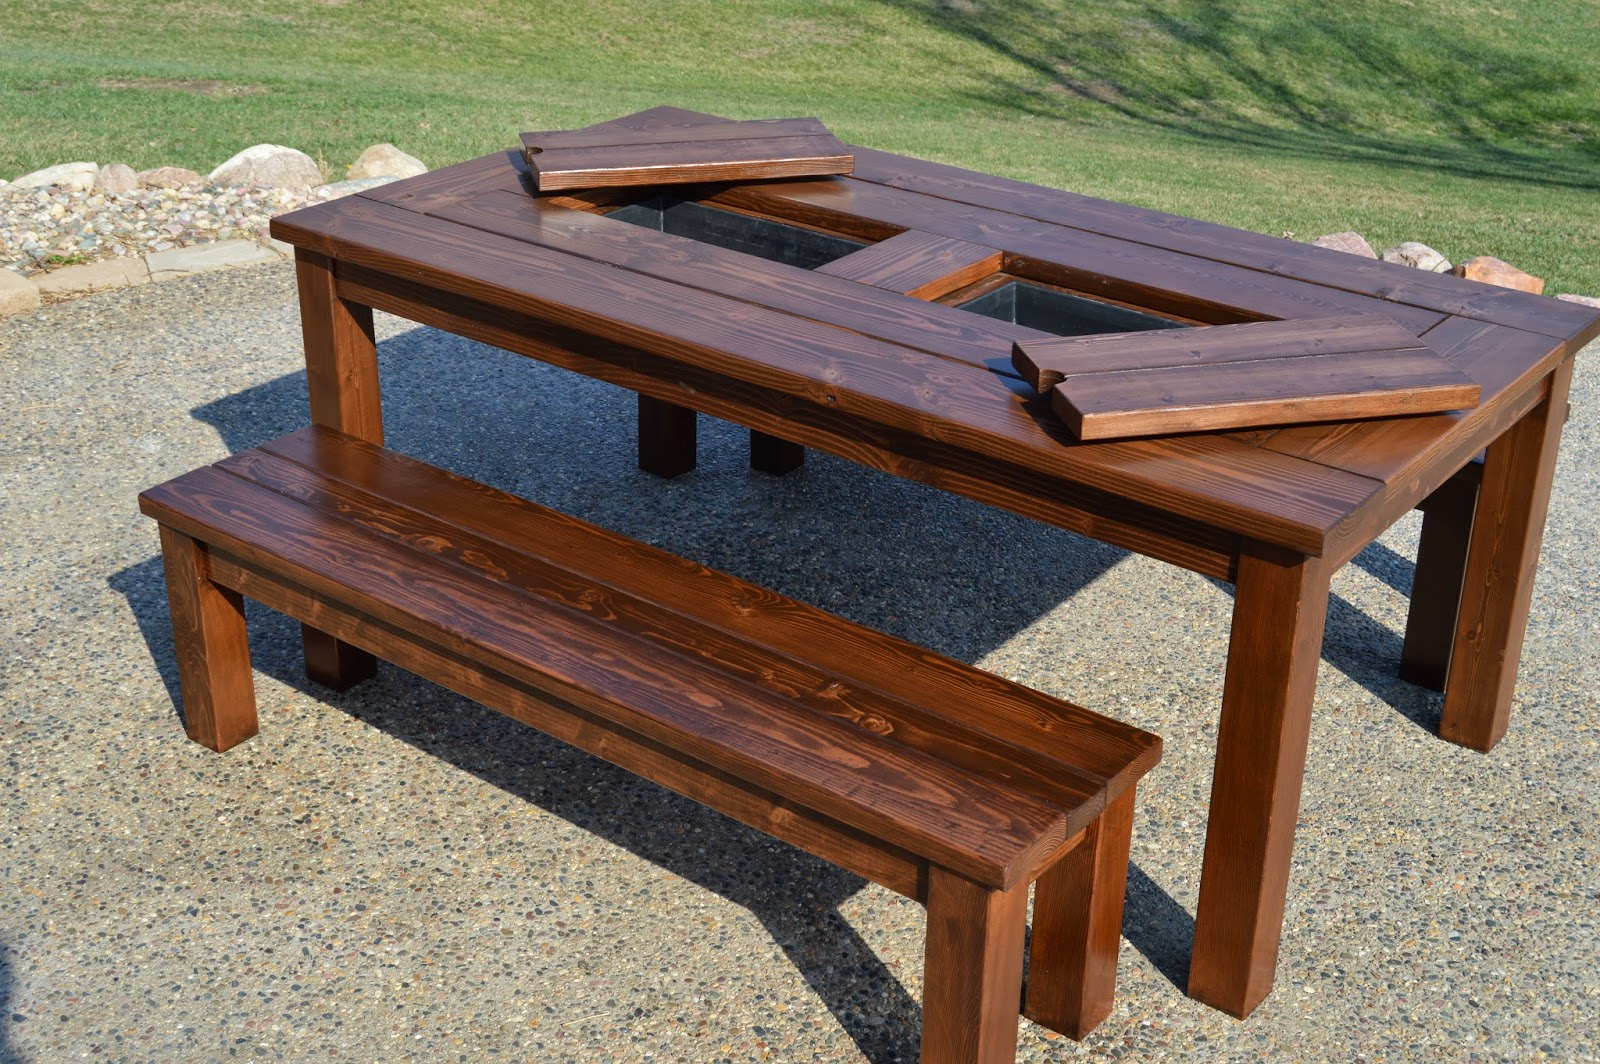 KRUSE'S WORKSHOP: Step By Step Patio Table Plans